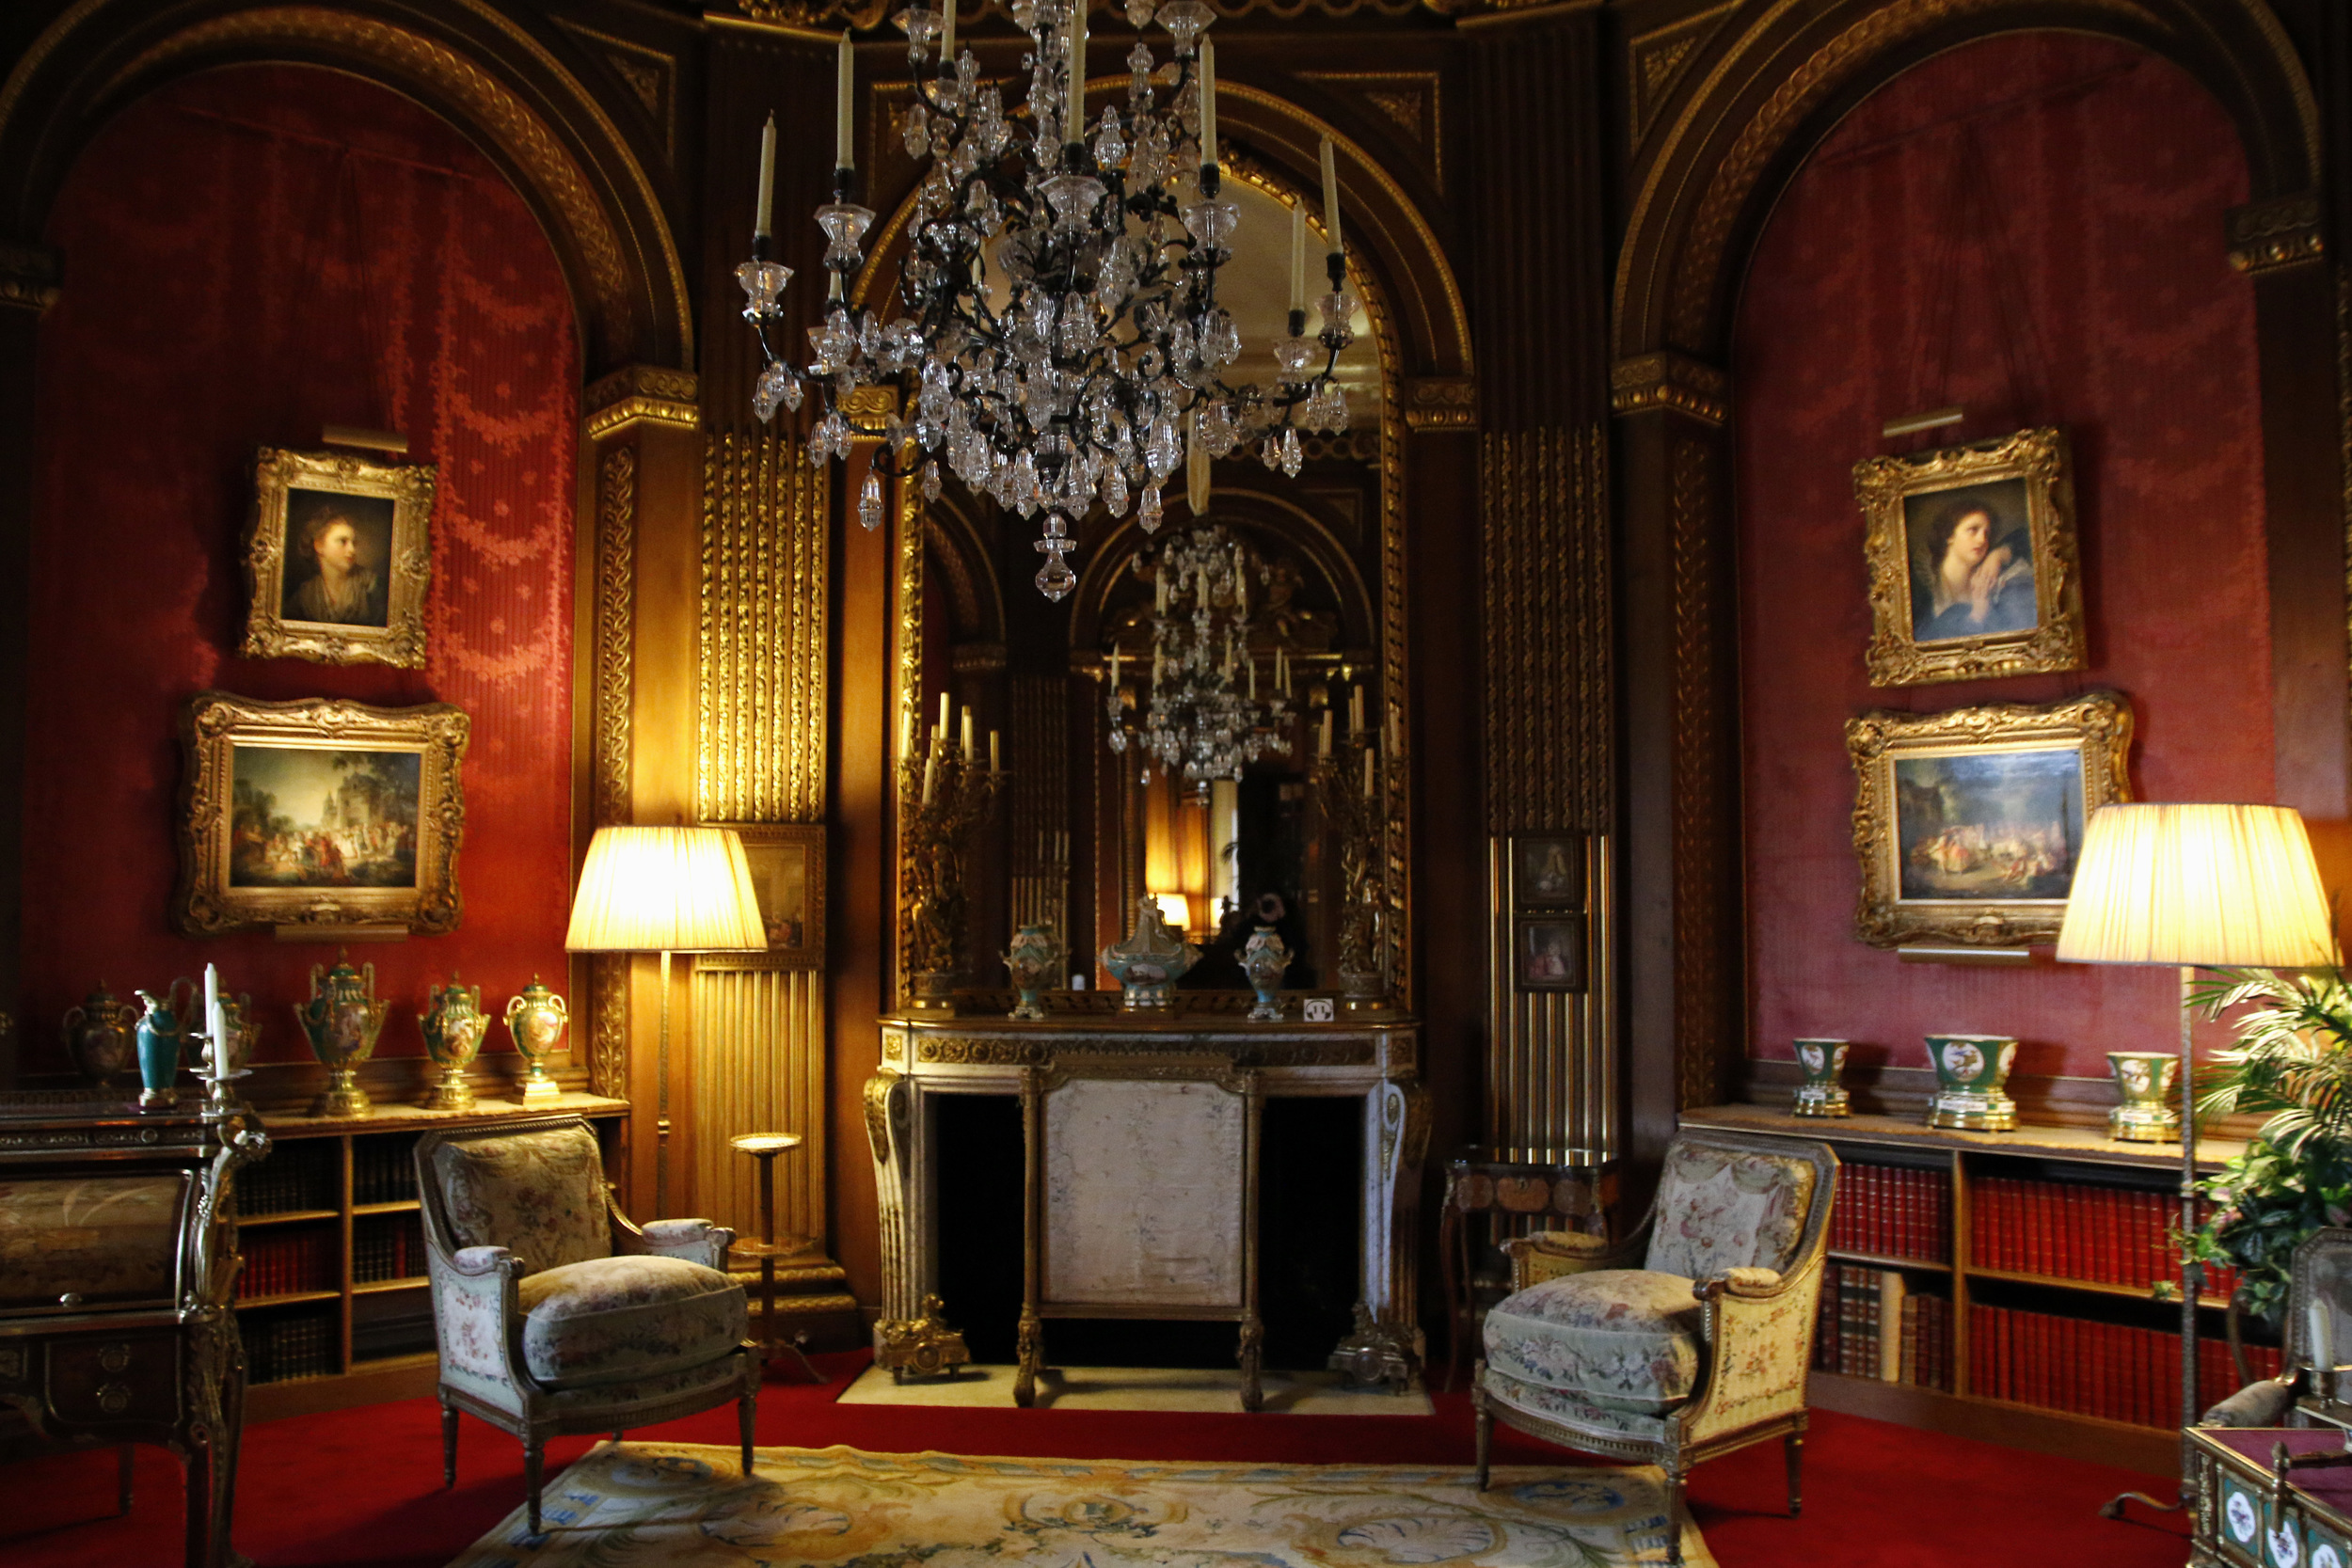 Just one of the elegant room inside